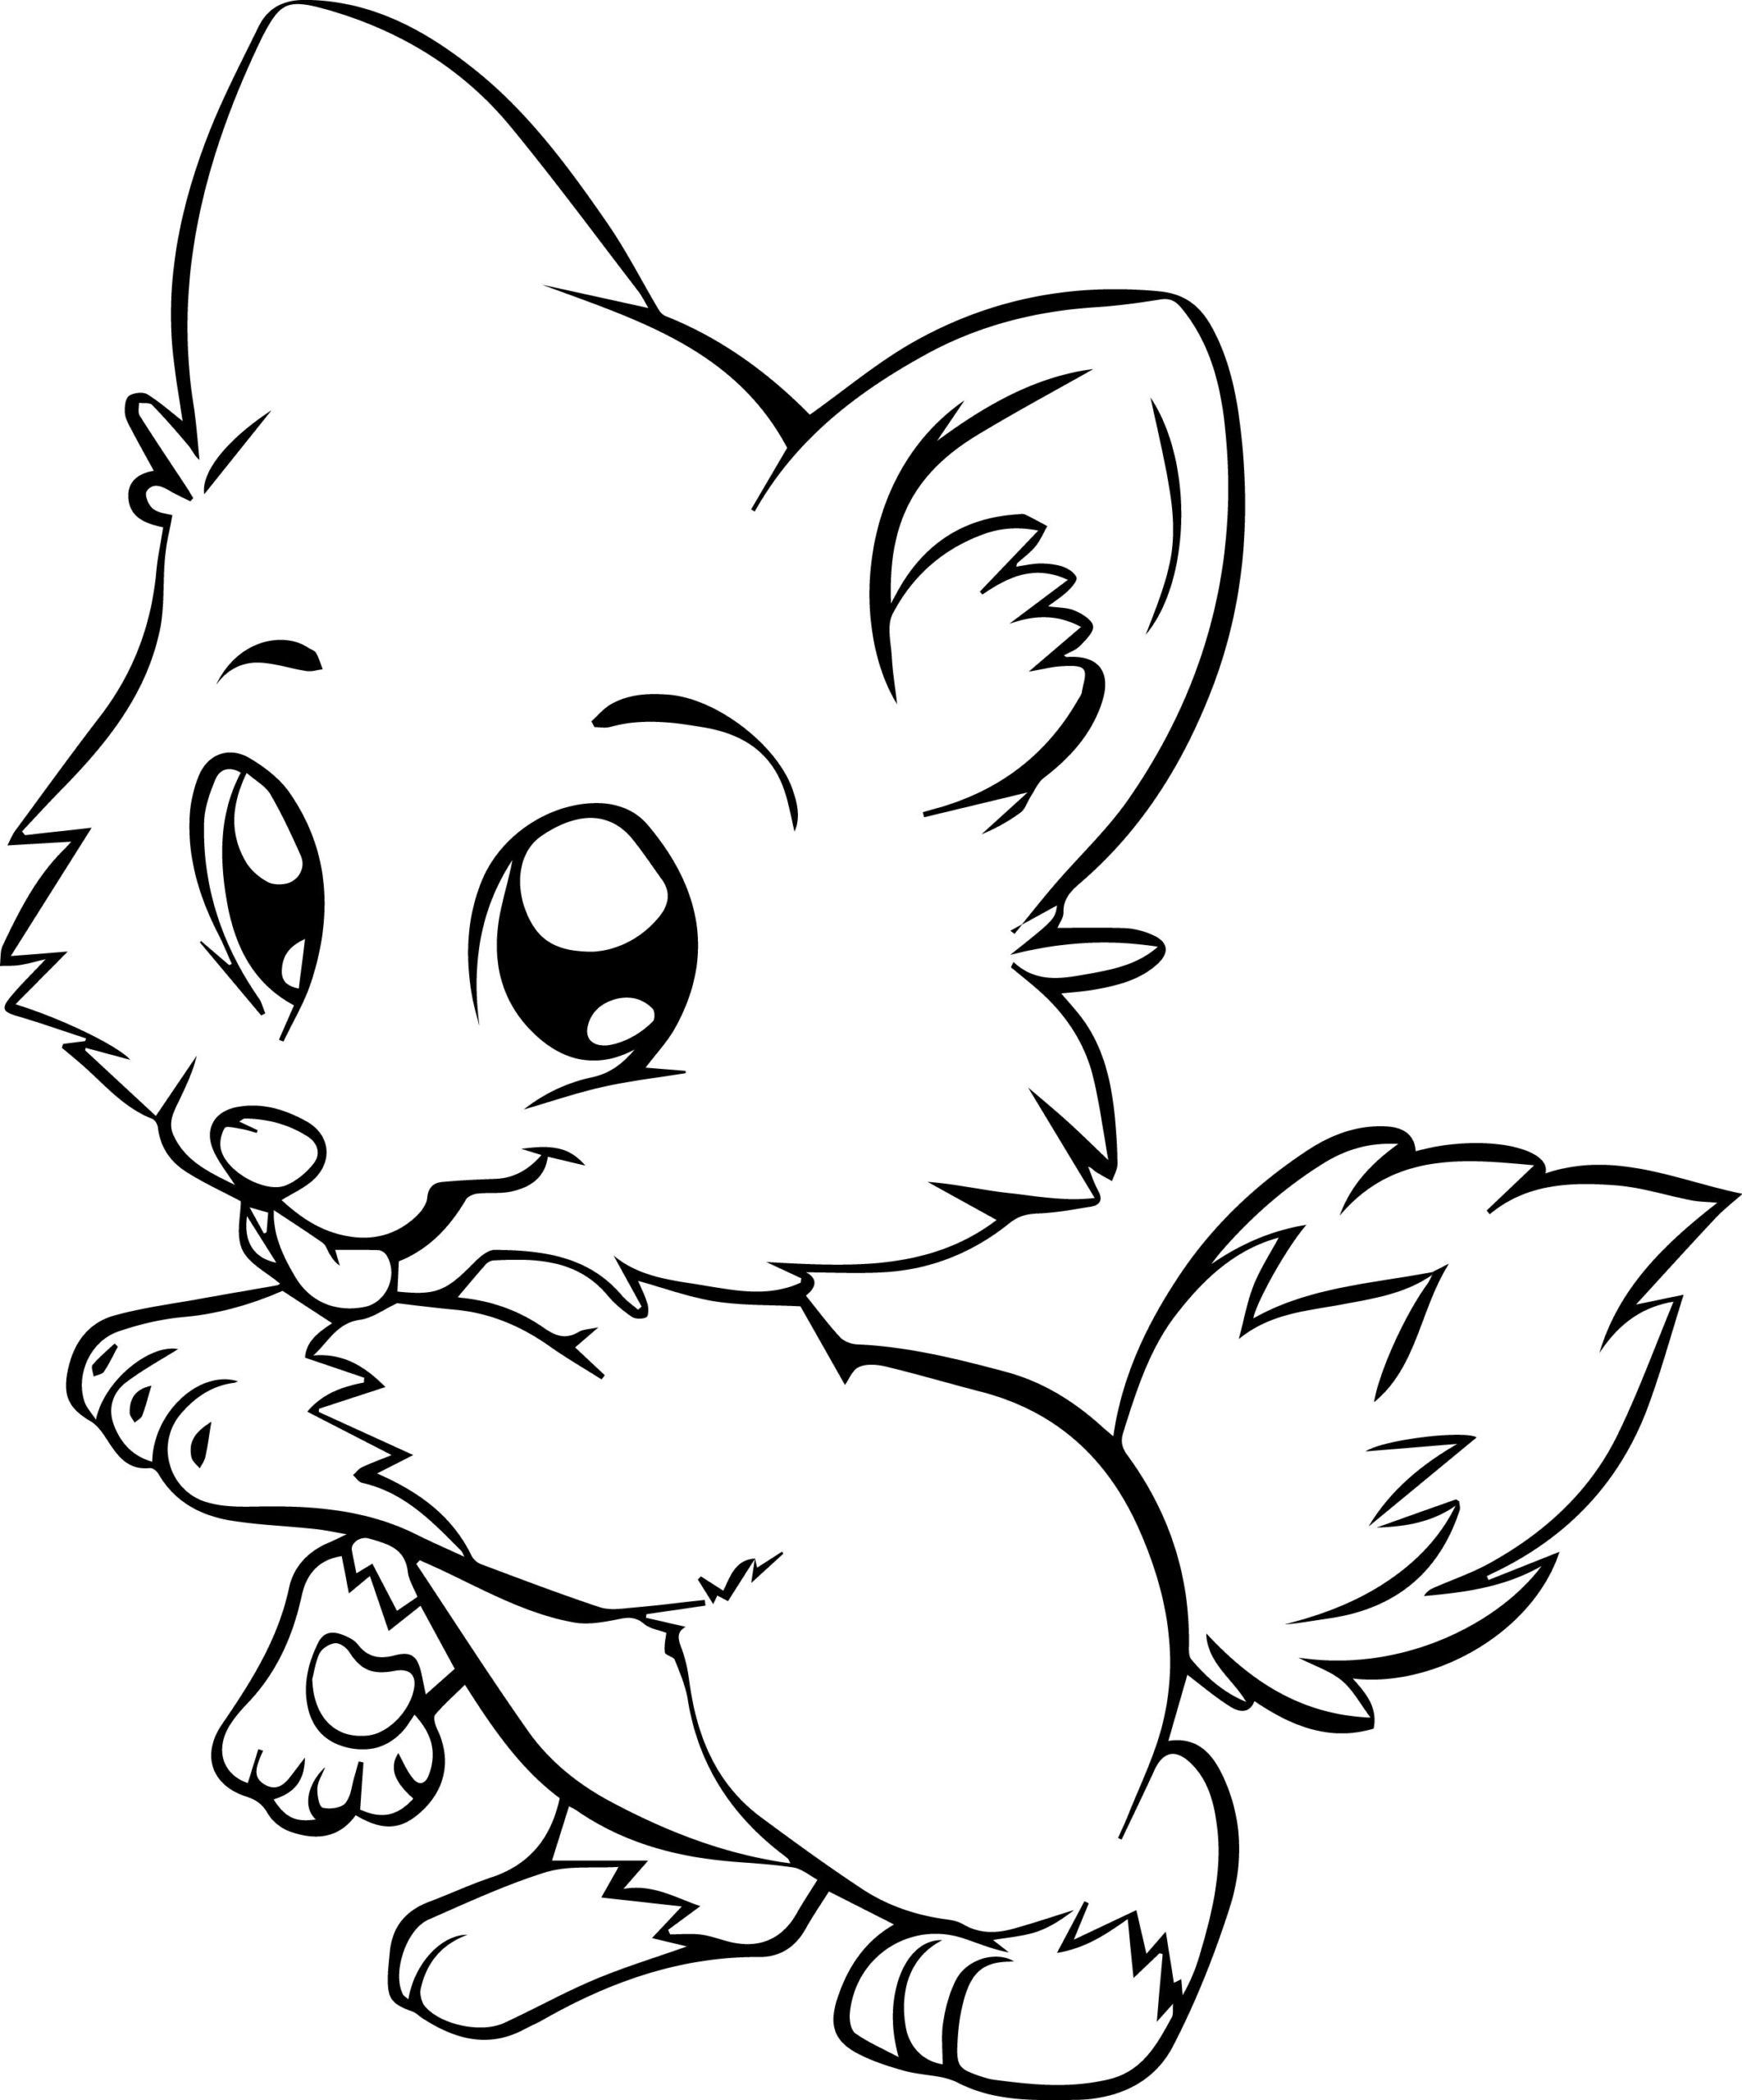 Cute Unicorn Coloring Page Youngandtae Com Unicorn Coloring Pages Fox Coloring Page Animal Coloring Pages